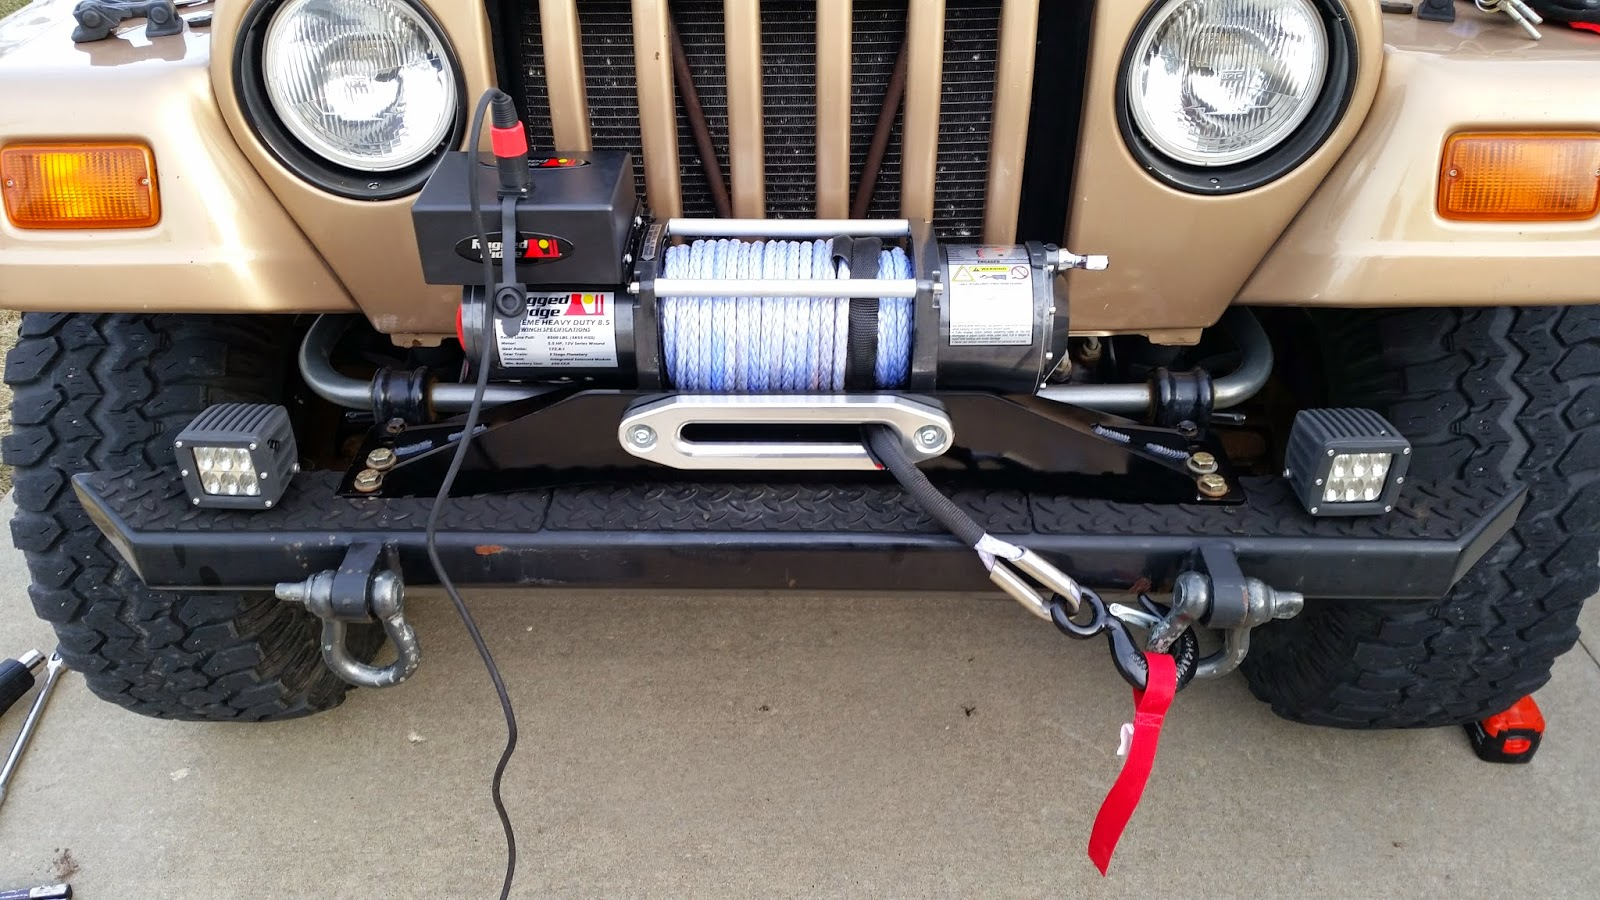 Disconnect The Winch Controller And Turn Off The Vehicle. Stand Back And  There You Have An Installed Winch From Rugged Ridge.